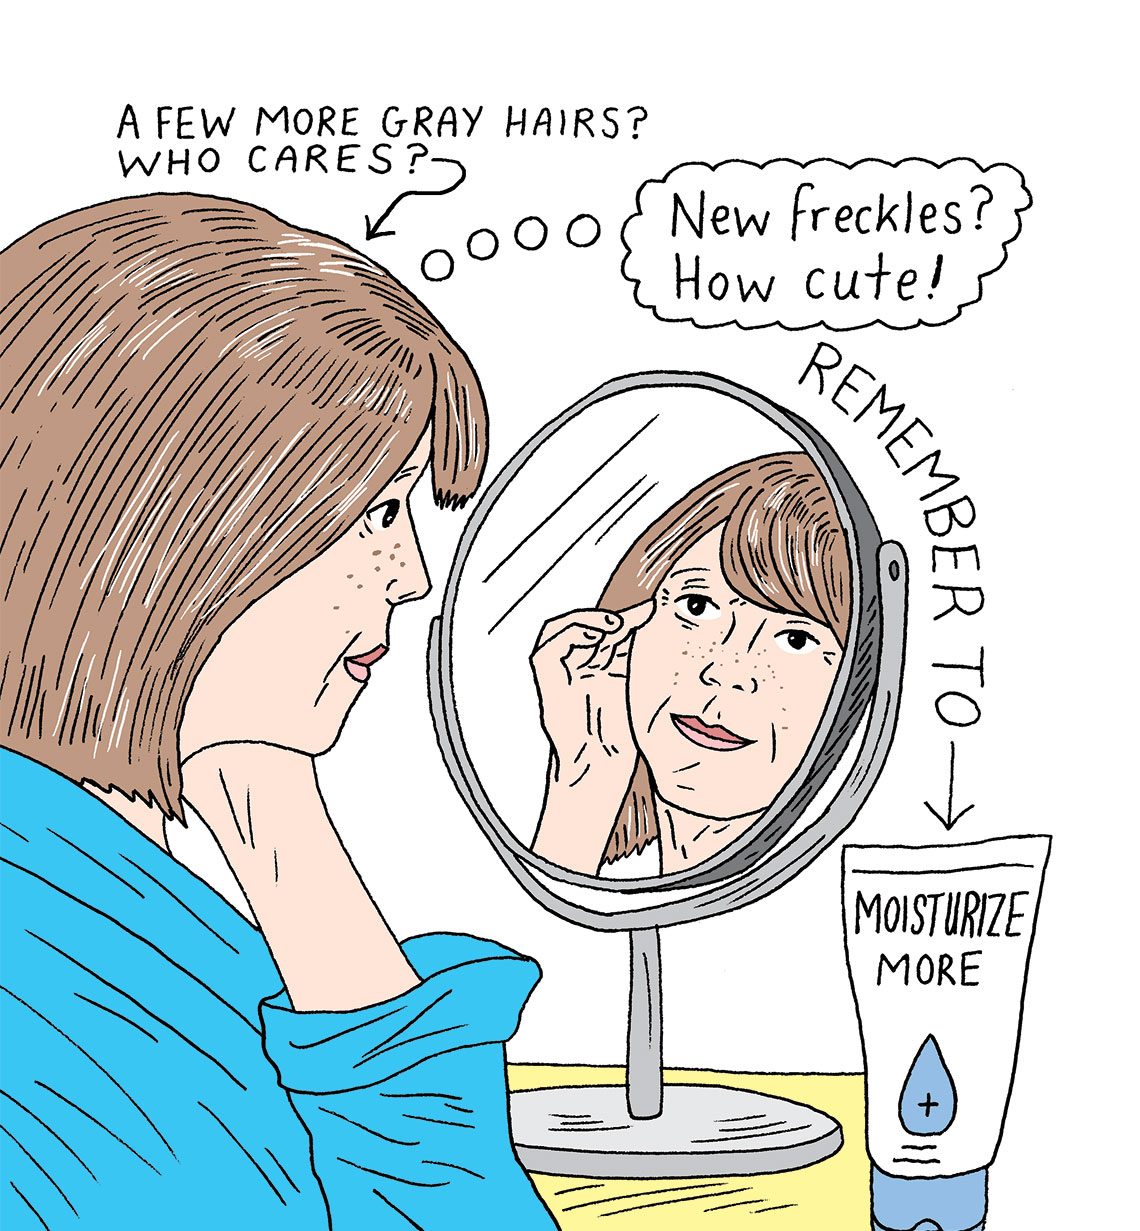 an illustration of a woman looking into the mirror